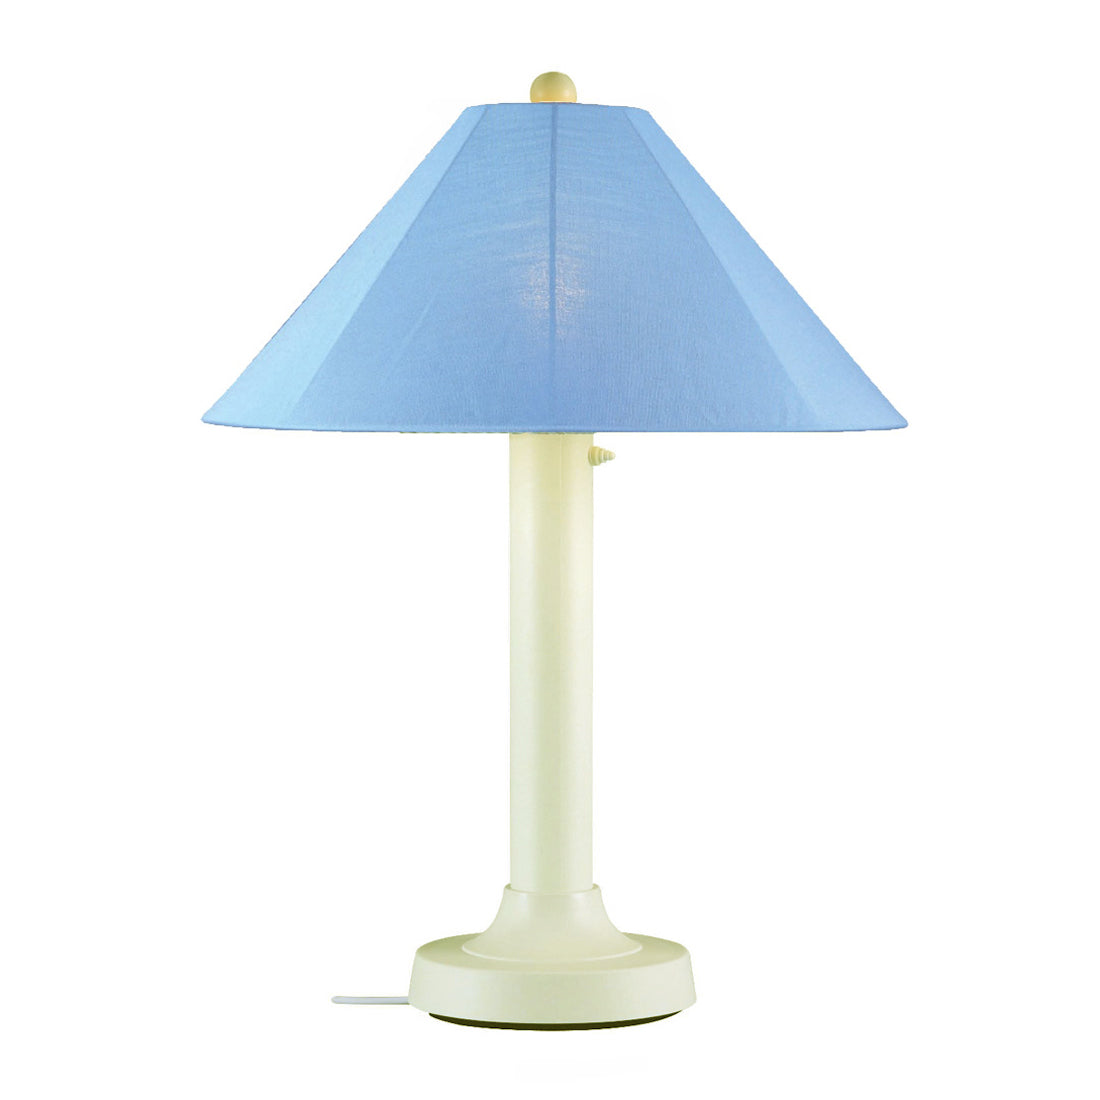 "Catalina Table Lamp 39644 with 3"" bisque body and sky blue Sunbrella shade fabric"